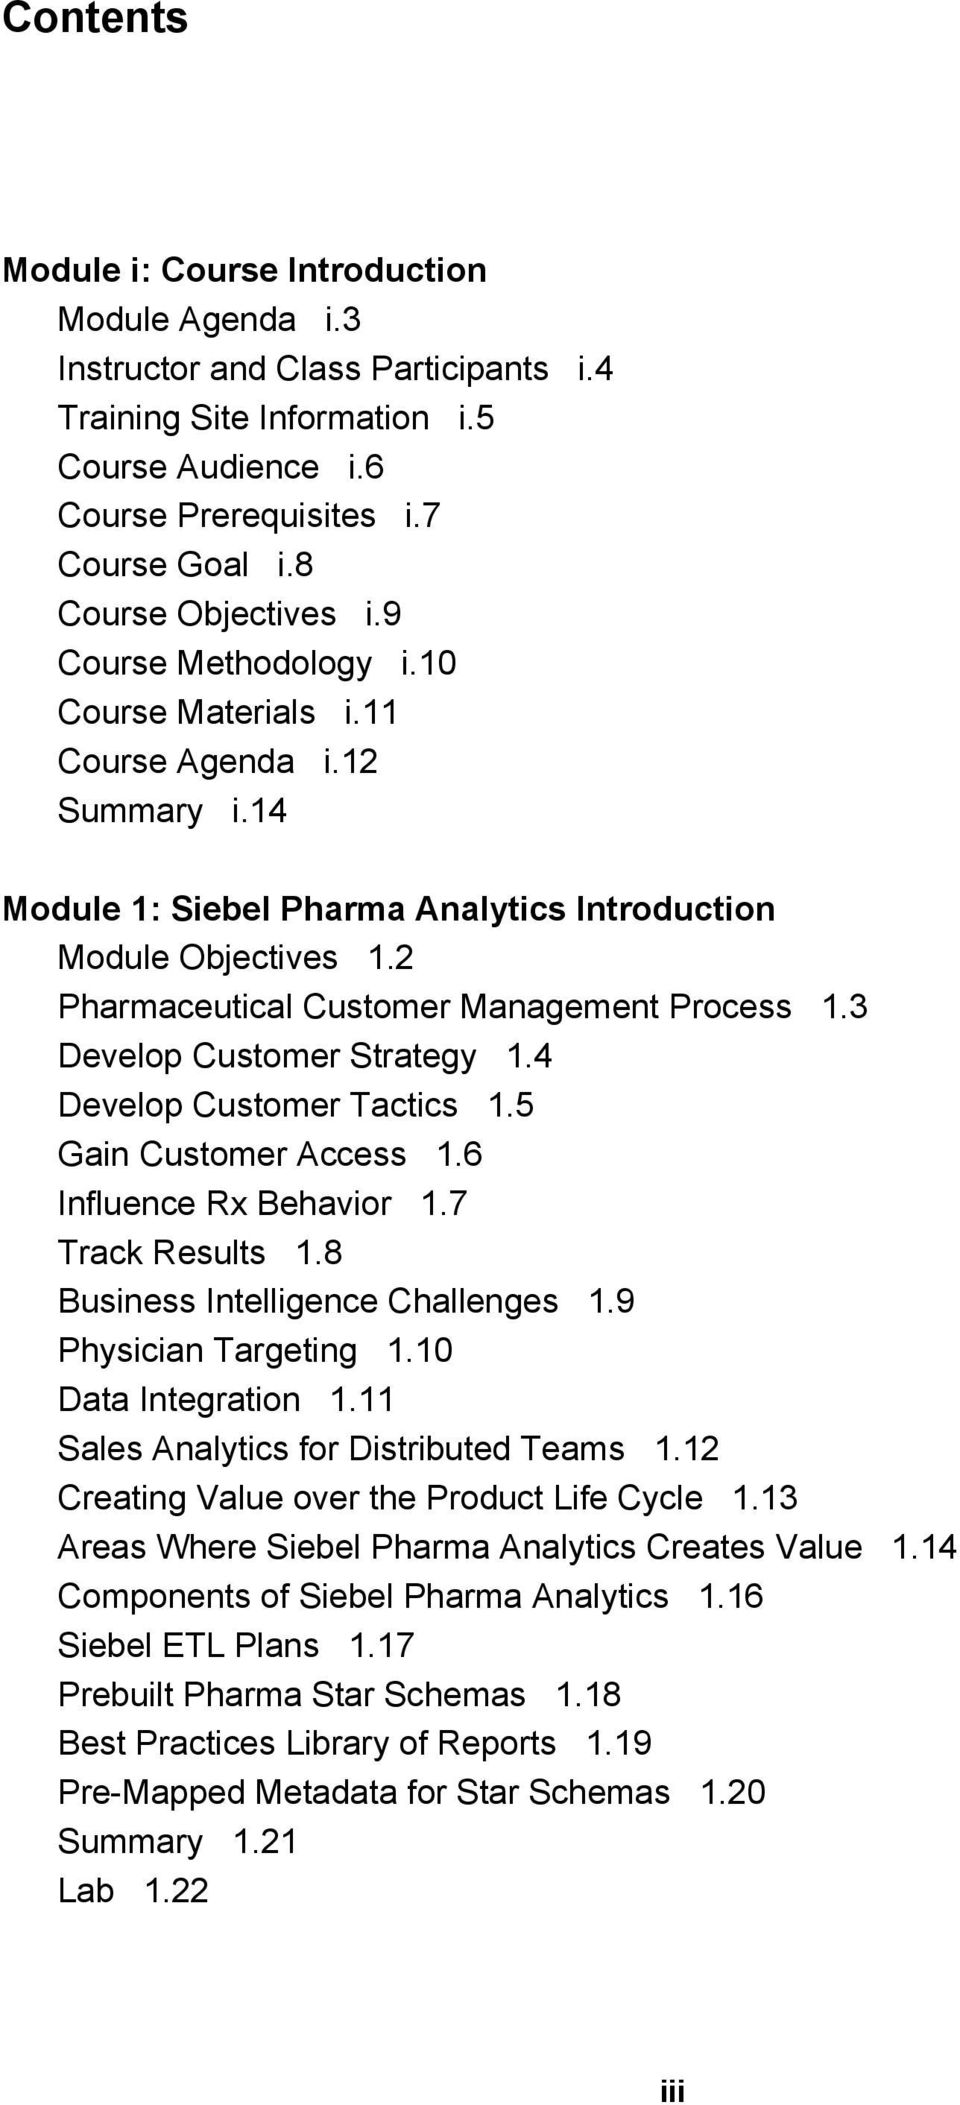 2 Pharmaceutical Customer Management Process 1.3 Develop Customer Strategy 1.4 Develop Customer Tactics 1.5 Gain Customer Access 1.6 Influence Rx Behavior 1.7 Track Results 1.